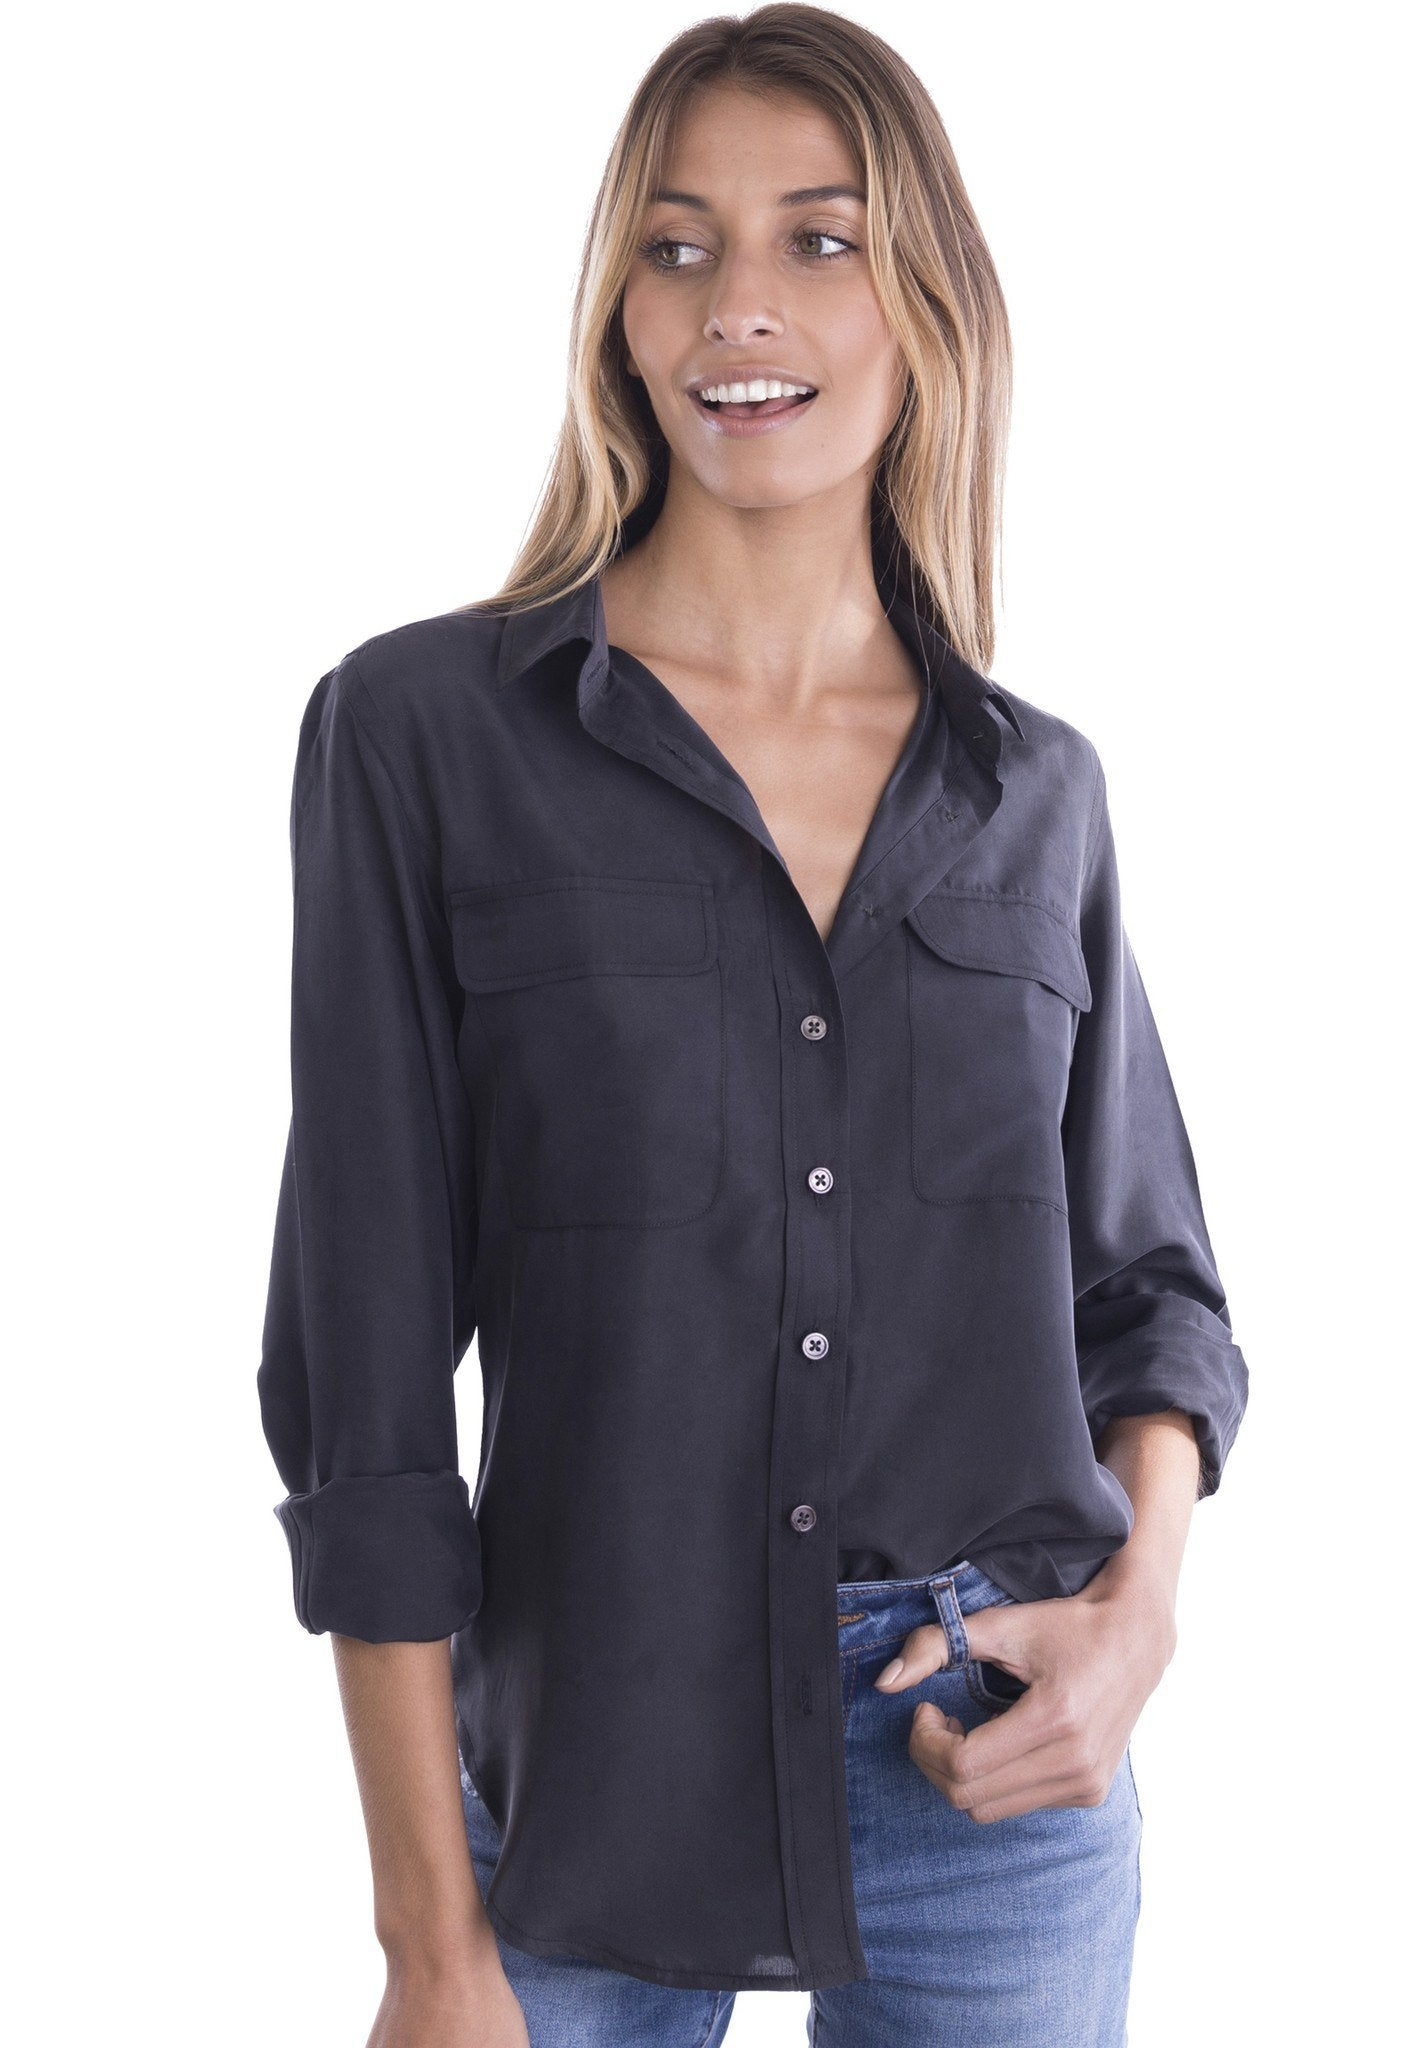 Lete Silk Black, Sand Washed Shirt with pockets